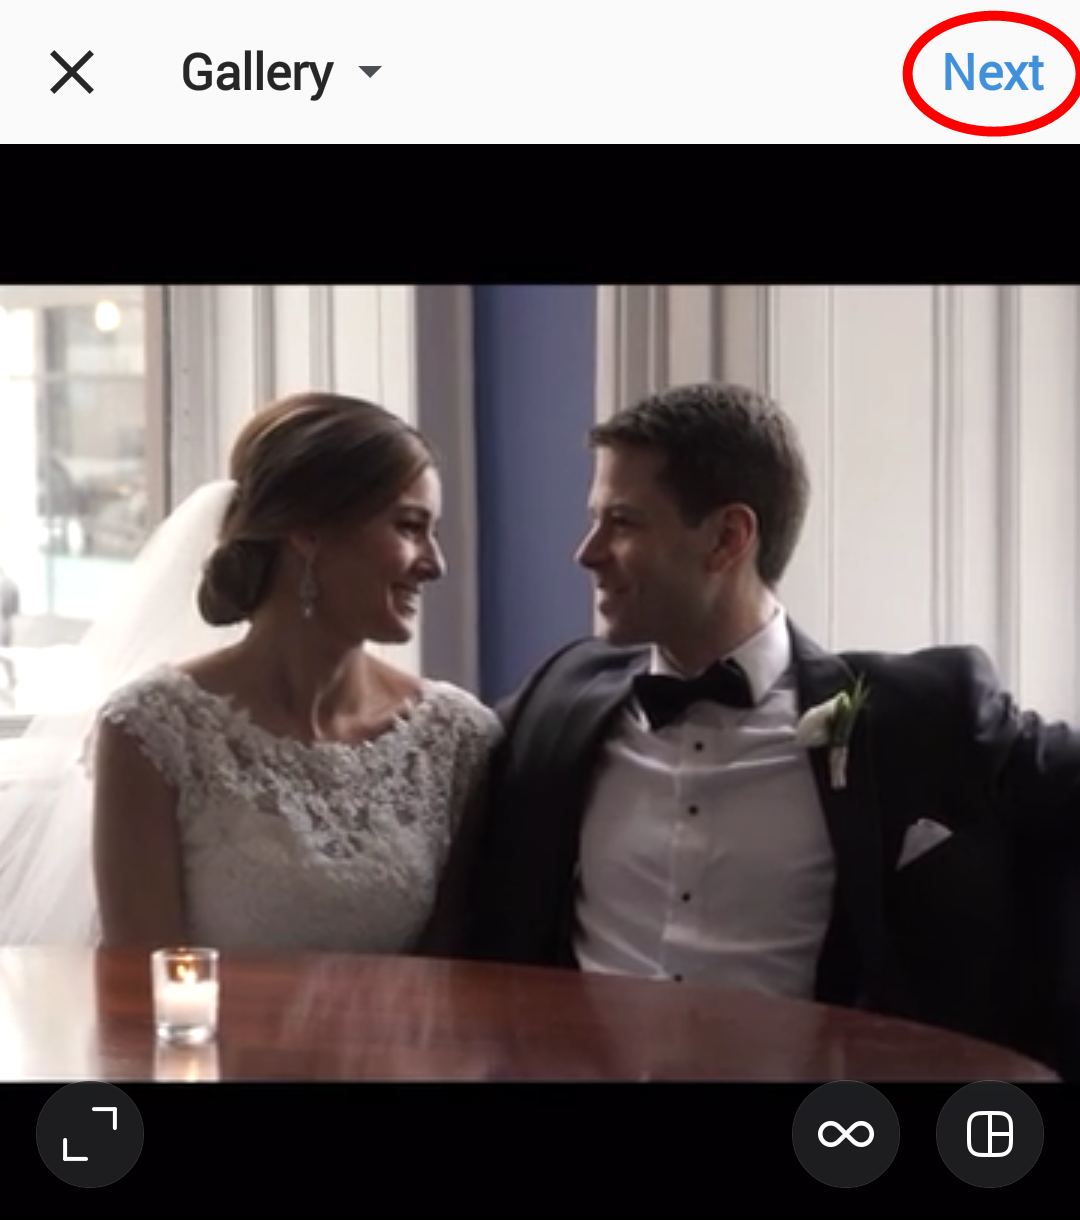 Screenshot 2016 08 24 15 45 12 - How to Post Your Wedding Trailer on Instagram